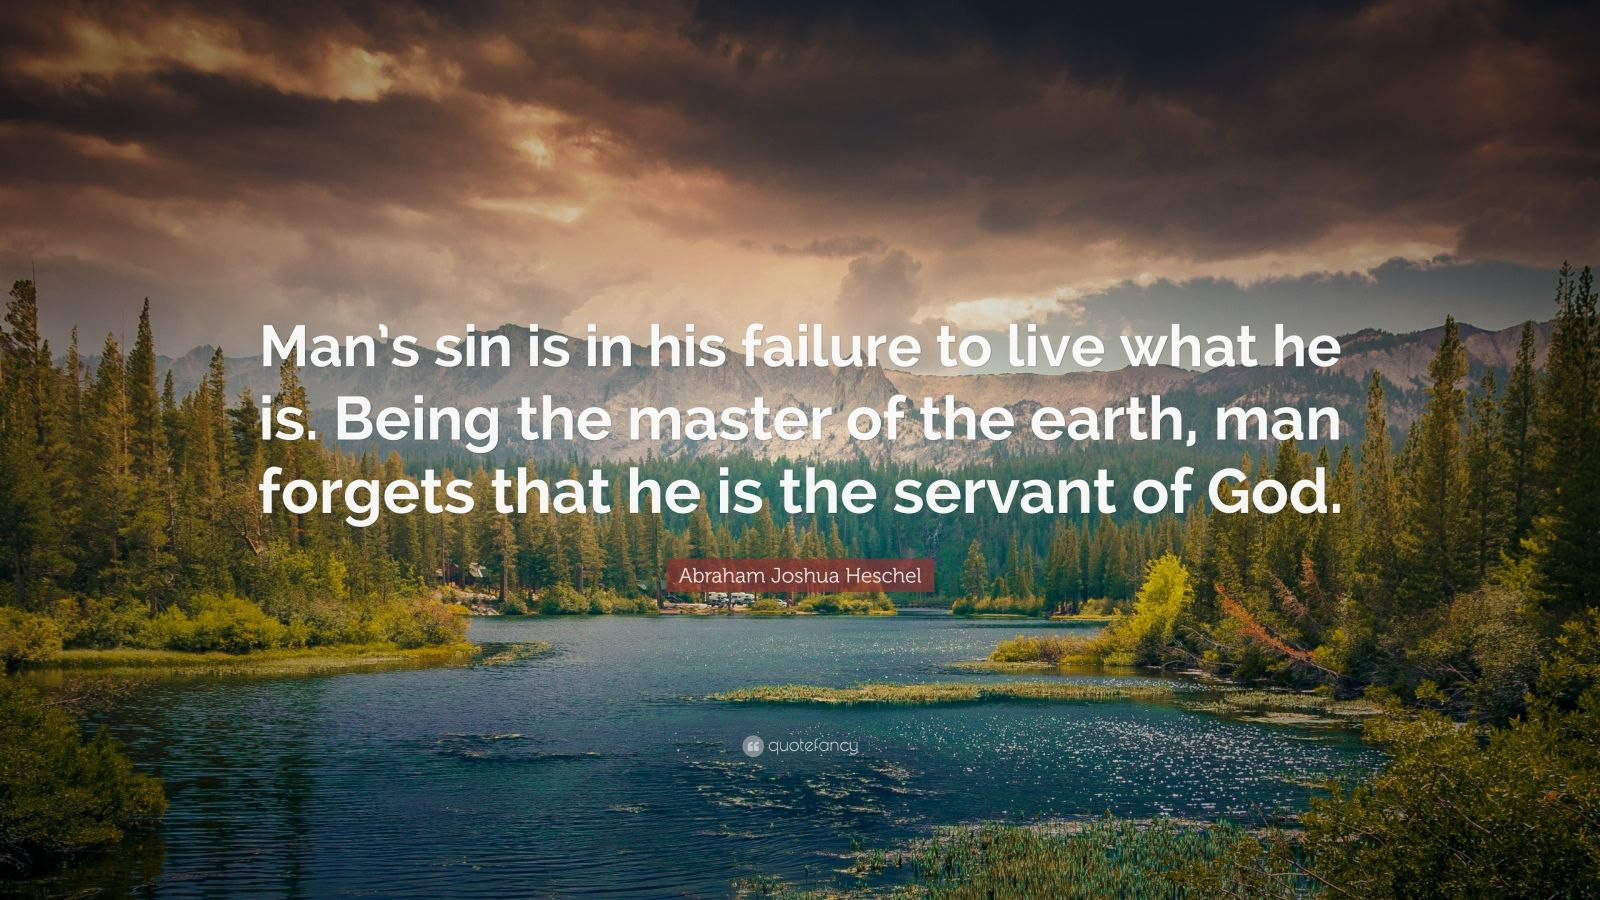 """Abraham Joshua Heschel Quote: """"Man's sin is in his failure to live what he is. Being the master of the earth, man forgets that he is the servant of God."""""""